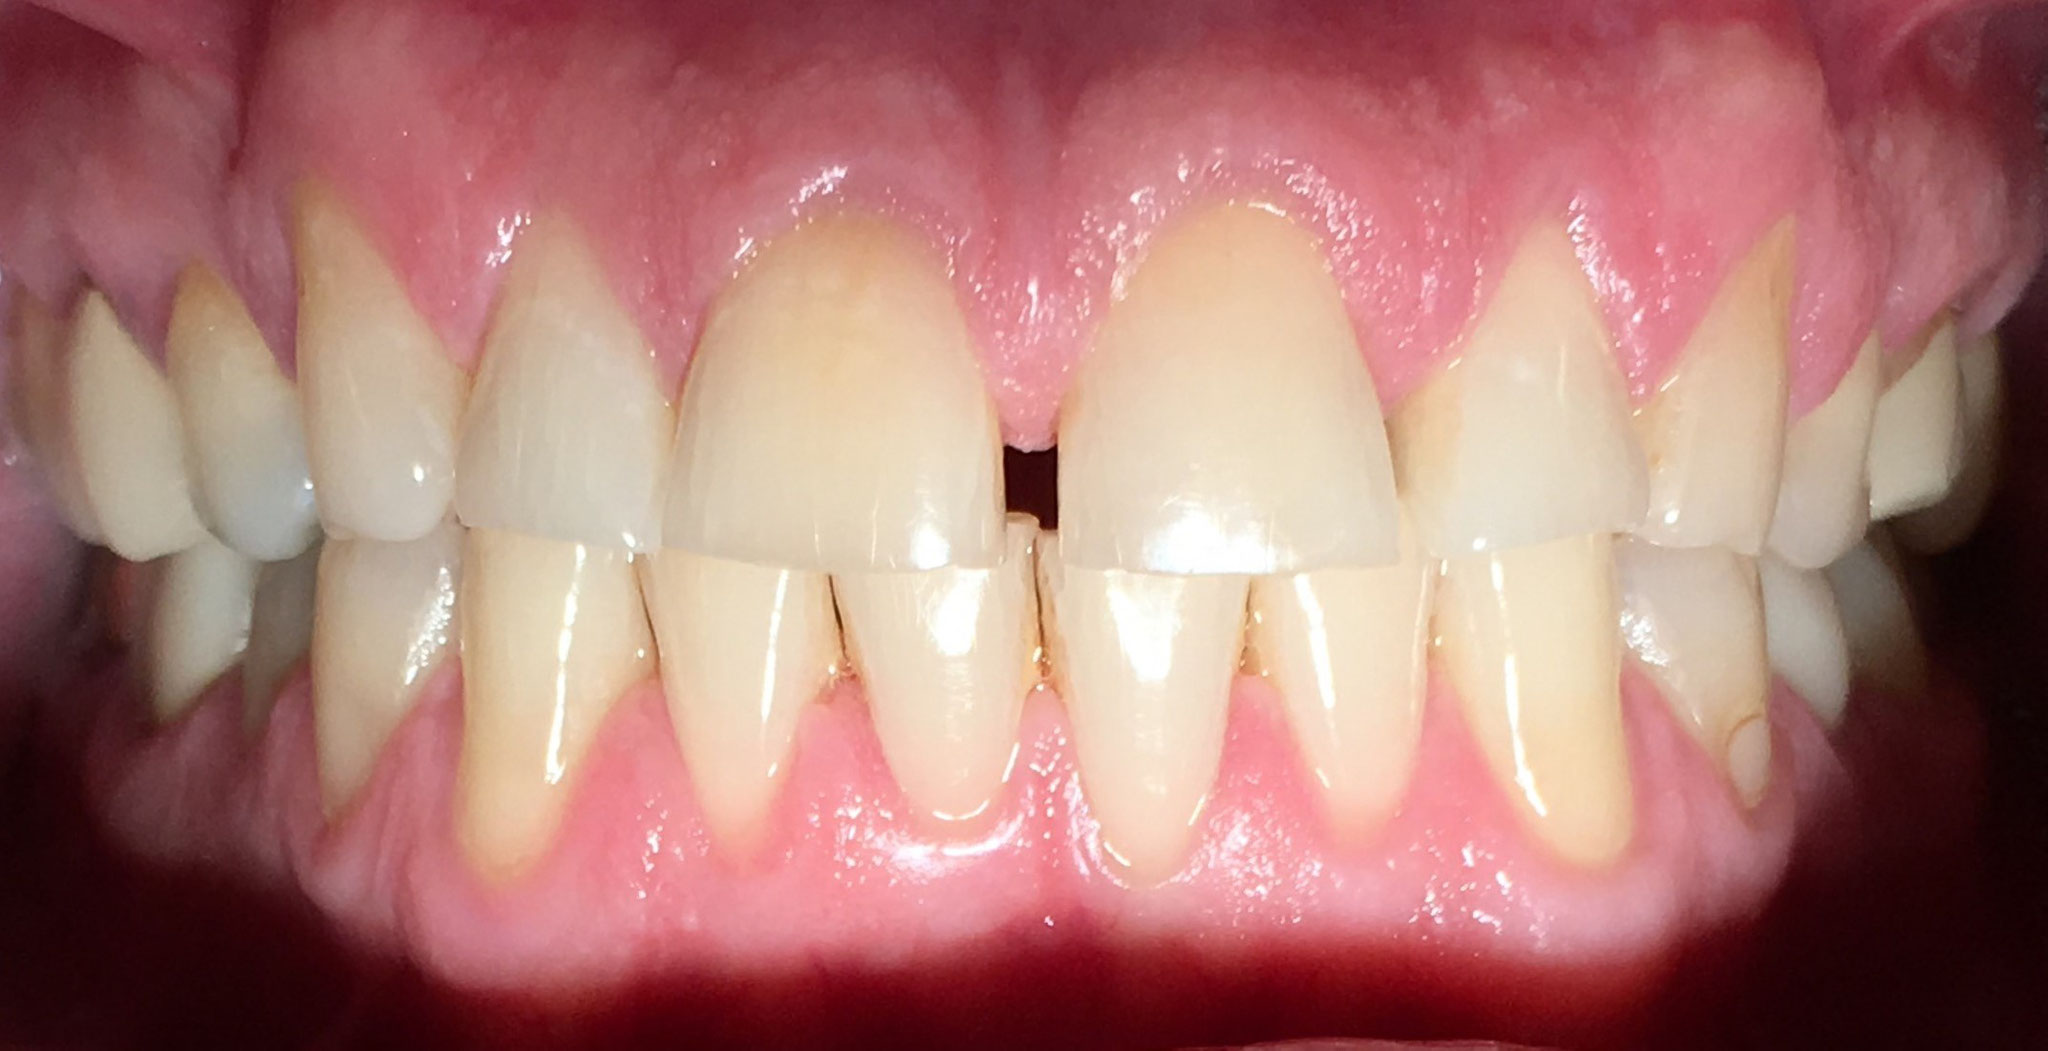 BEFORE | Cosmetic veneers. Patient had severe gapping and wear